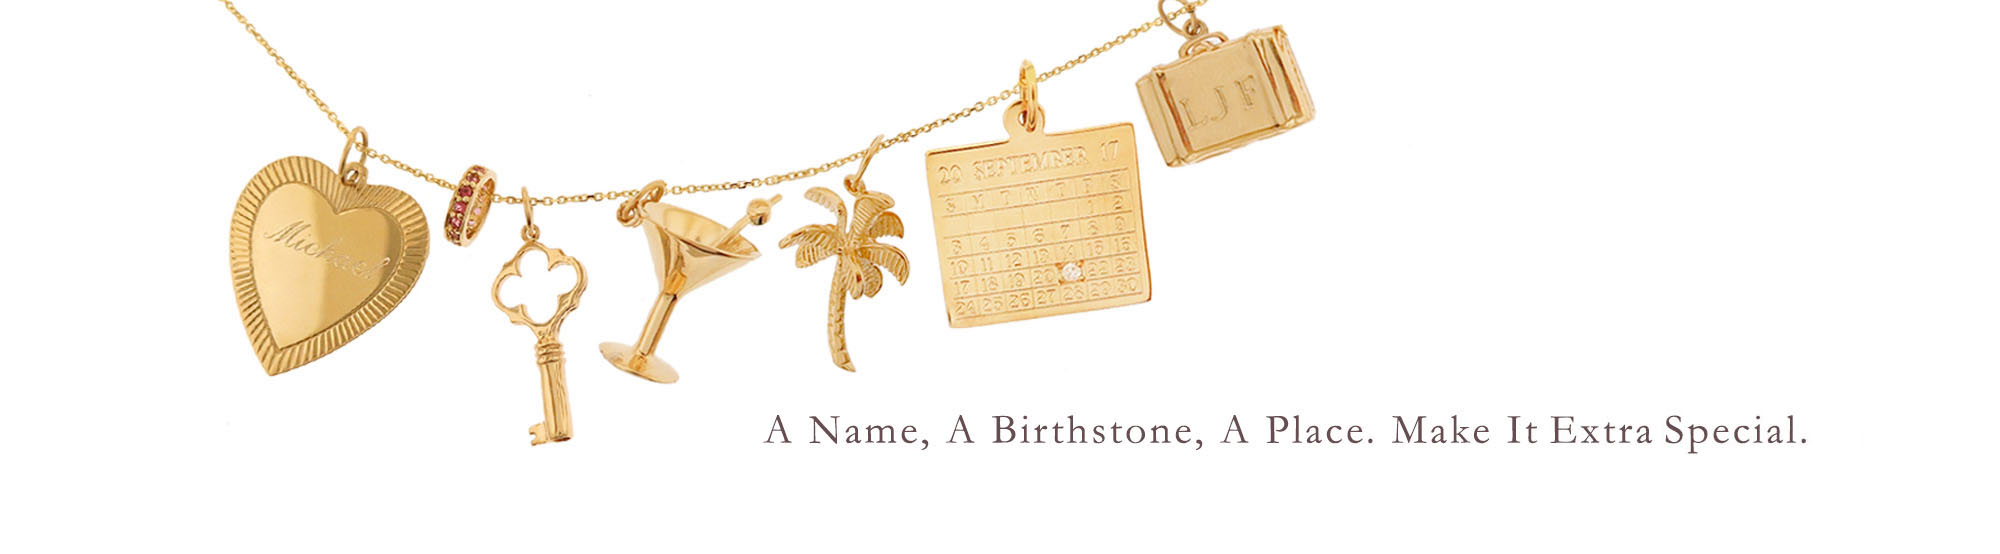 personalized-engravables-charm-banner.jpg